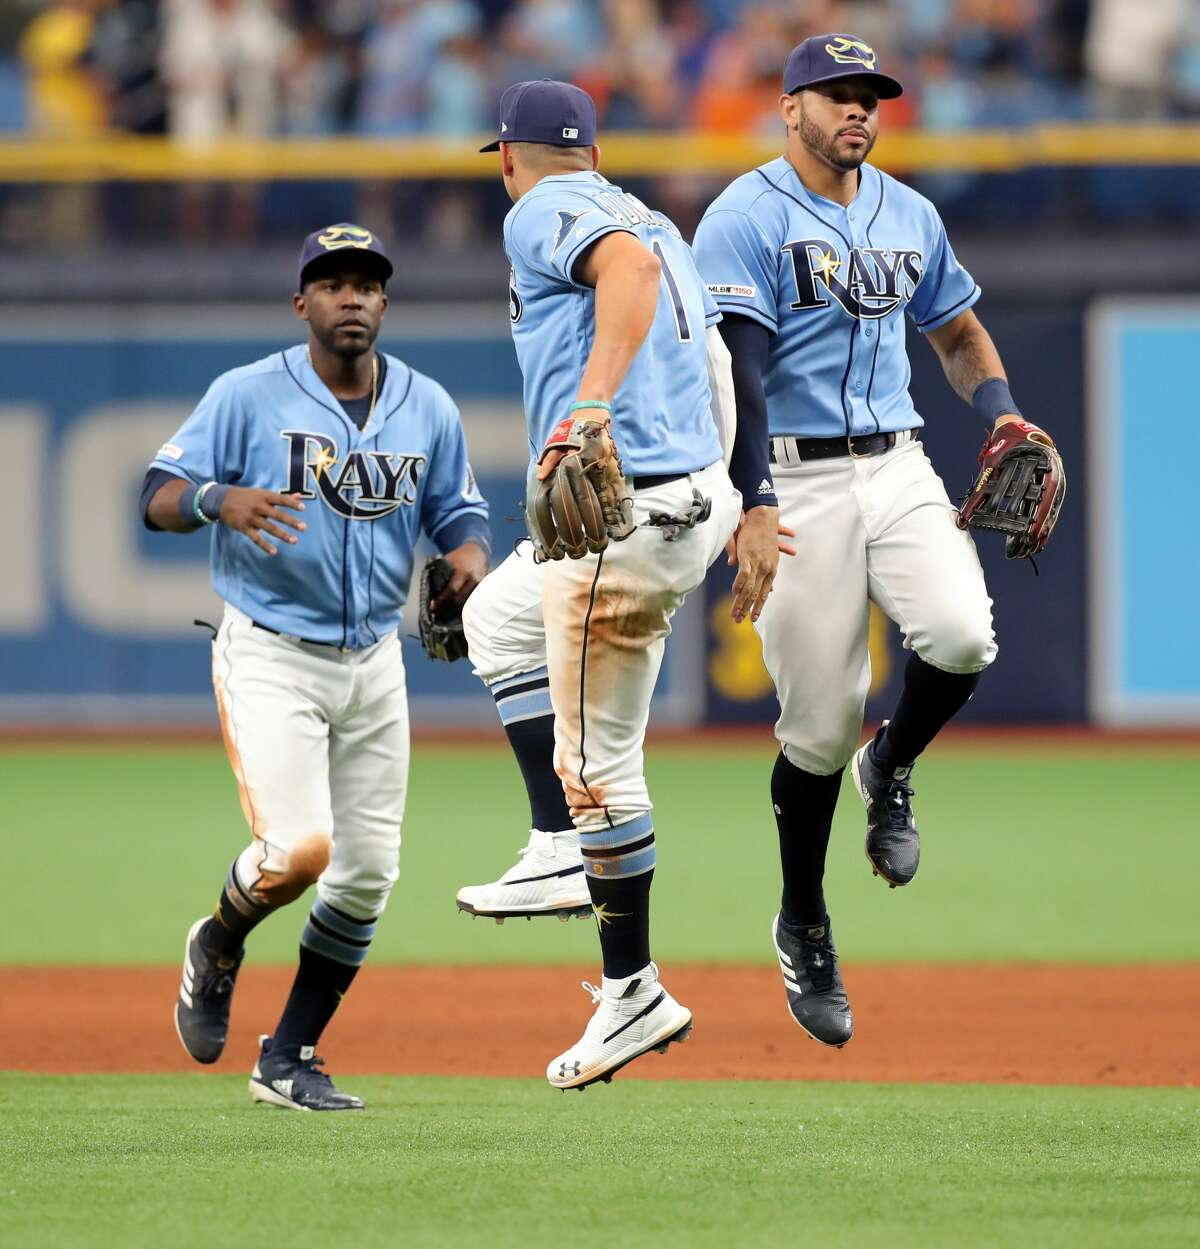 ST. PETERSBURG, FL - MARCH 31: Tommy Pham #29 of the Tampa Bay Rays, right, celebrates with Willy Adames #1 after a win over the Houston Astros in a baseball game at Tropicana Field on March 31, 2019 in St. Petersburg, Florida. (Photo by Mike Carlson/Getty Images)